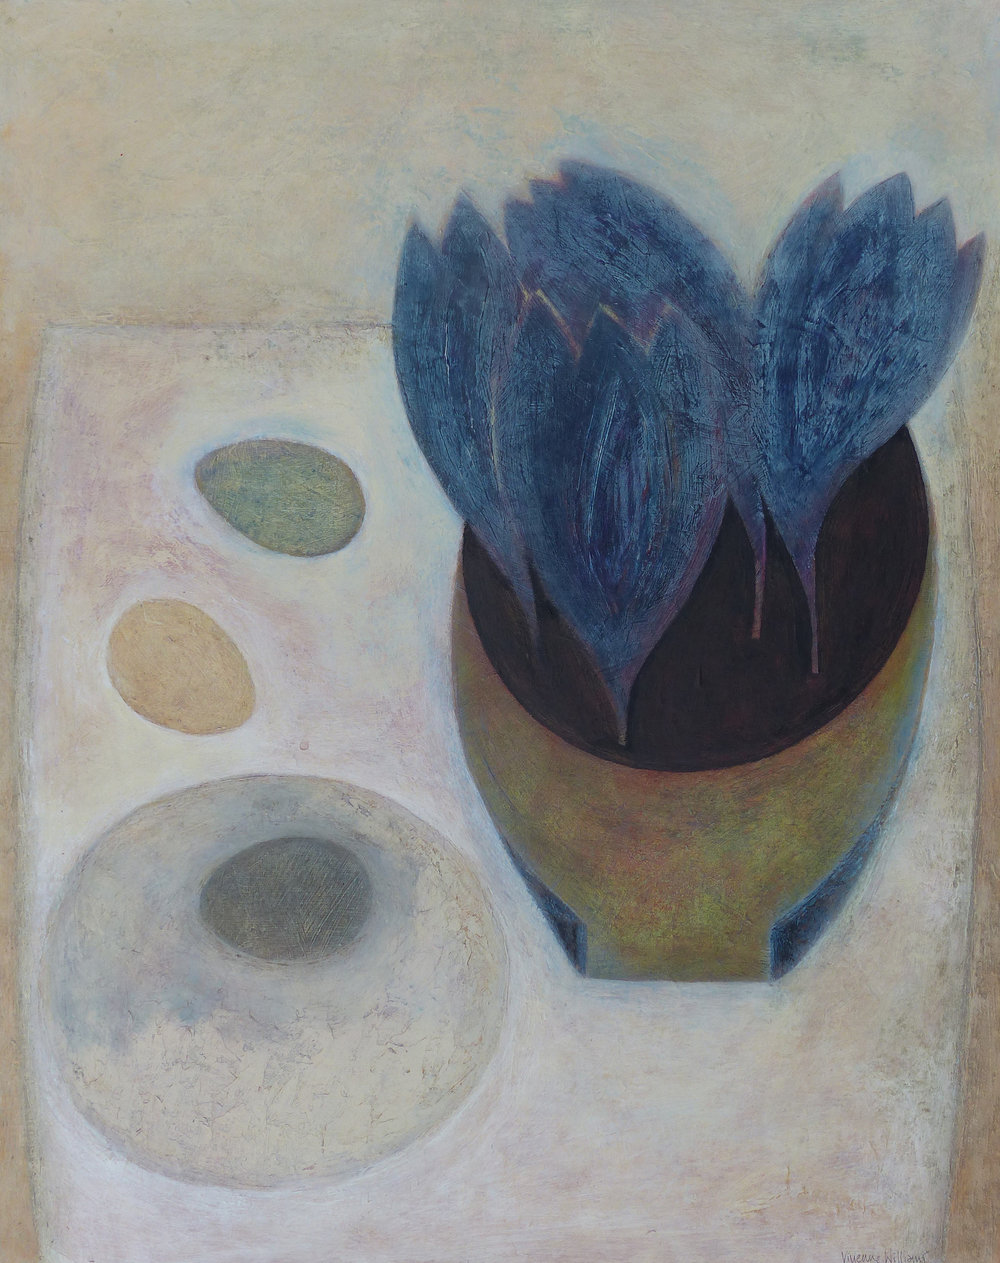 Blue Crocus with Three Eggs, 51cm x 41cm, 2016